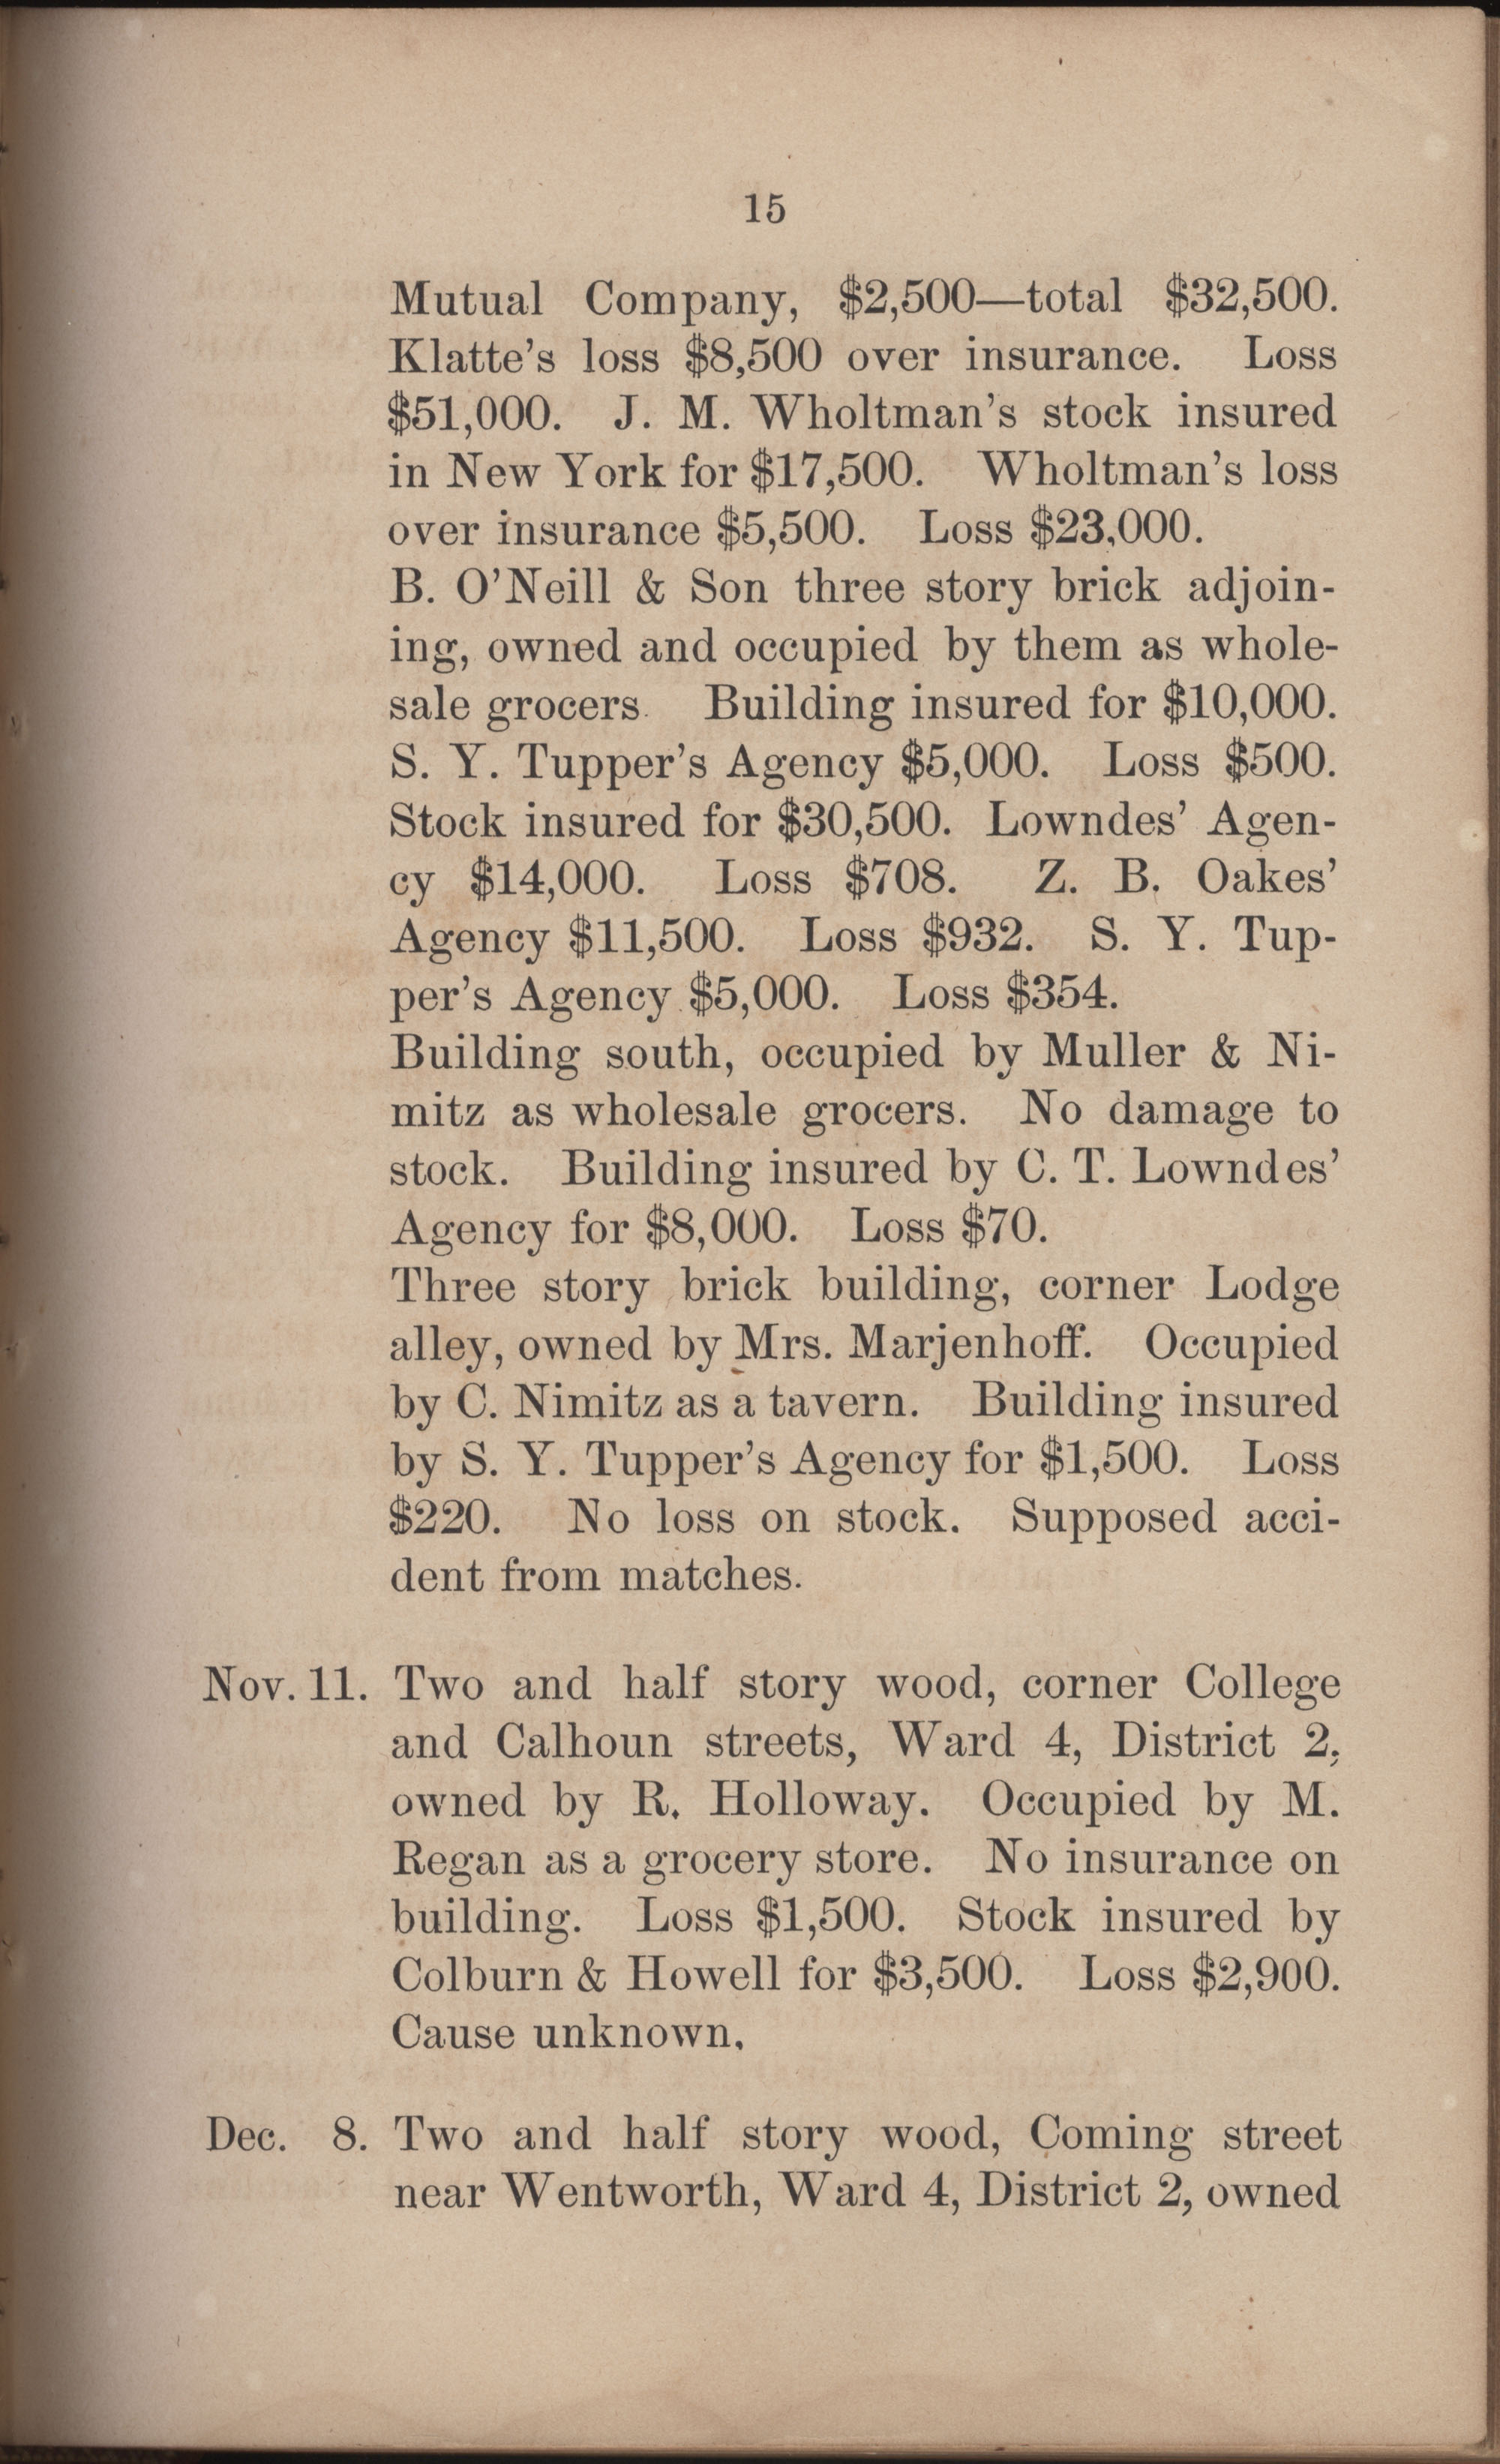 Annual Report of the Chief of the Fire Department of the City of Charleston, page 306